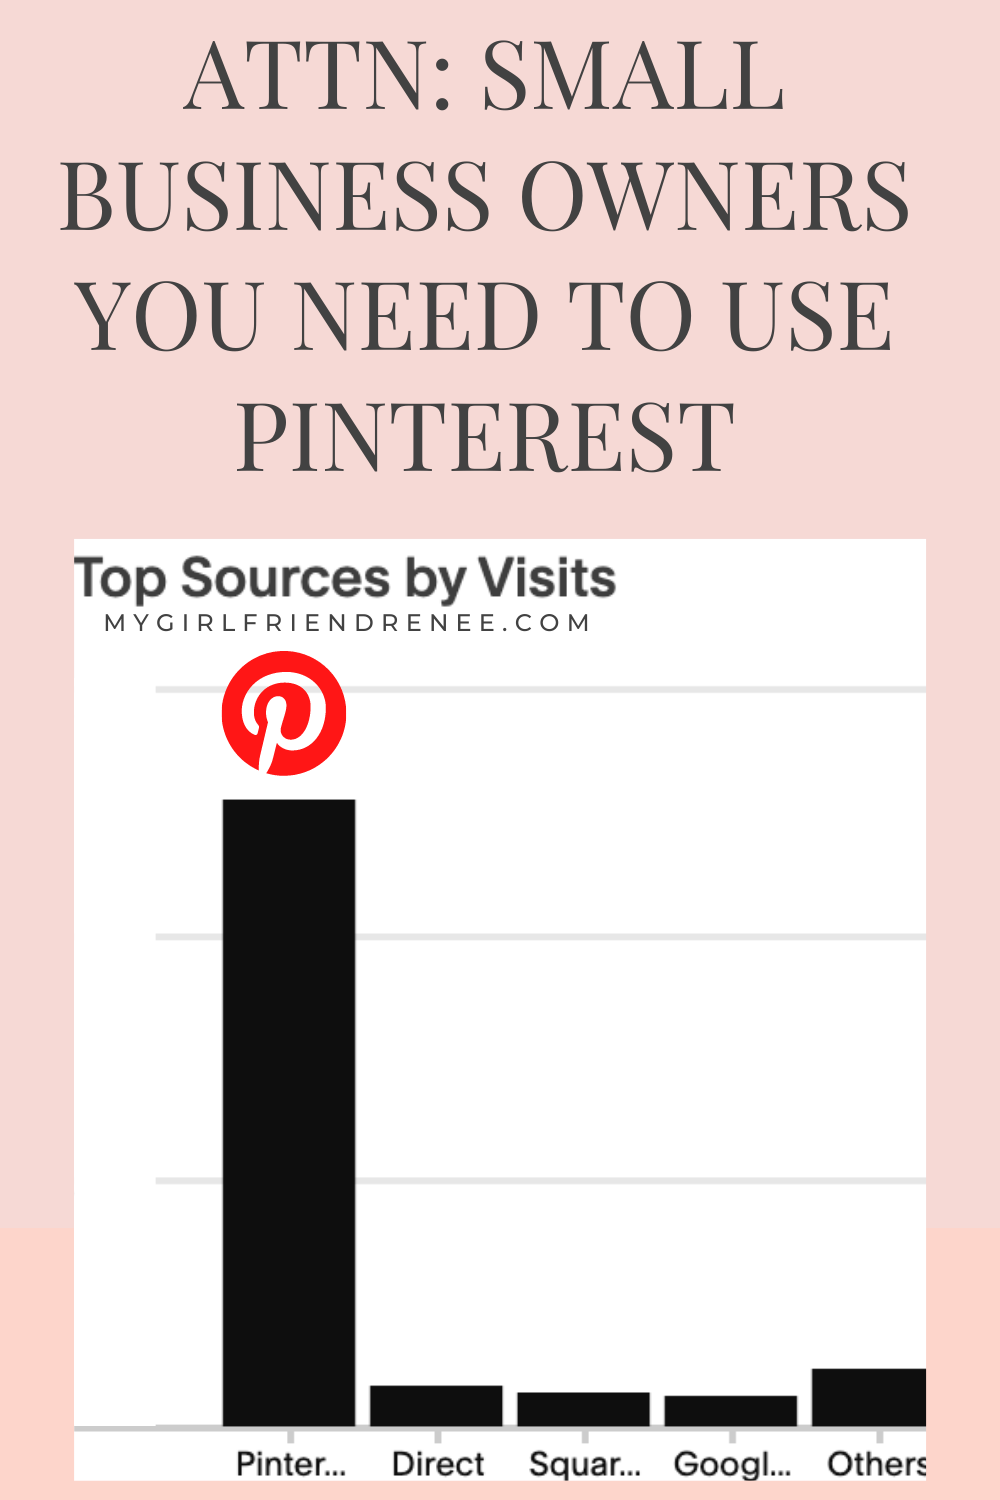 How to use Pinterest for Business — My Girlfriend Renee in 20 ...